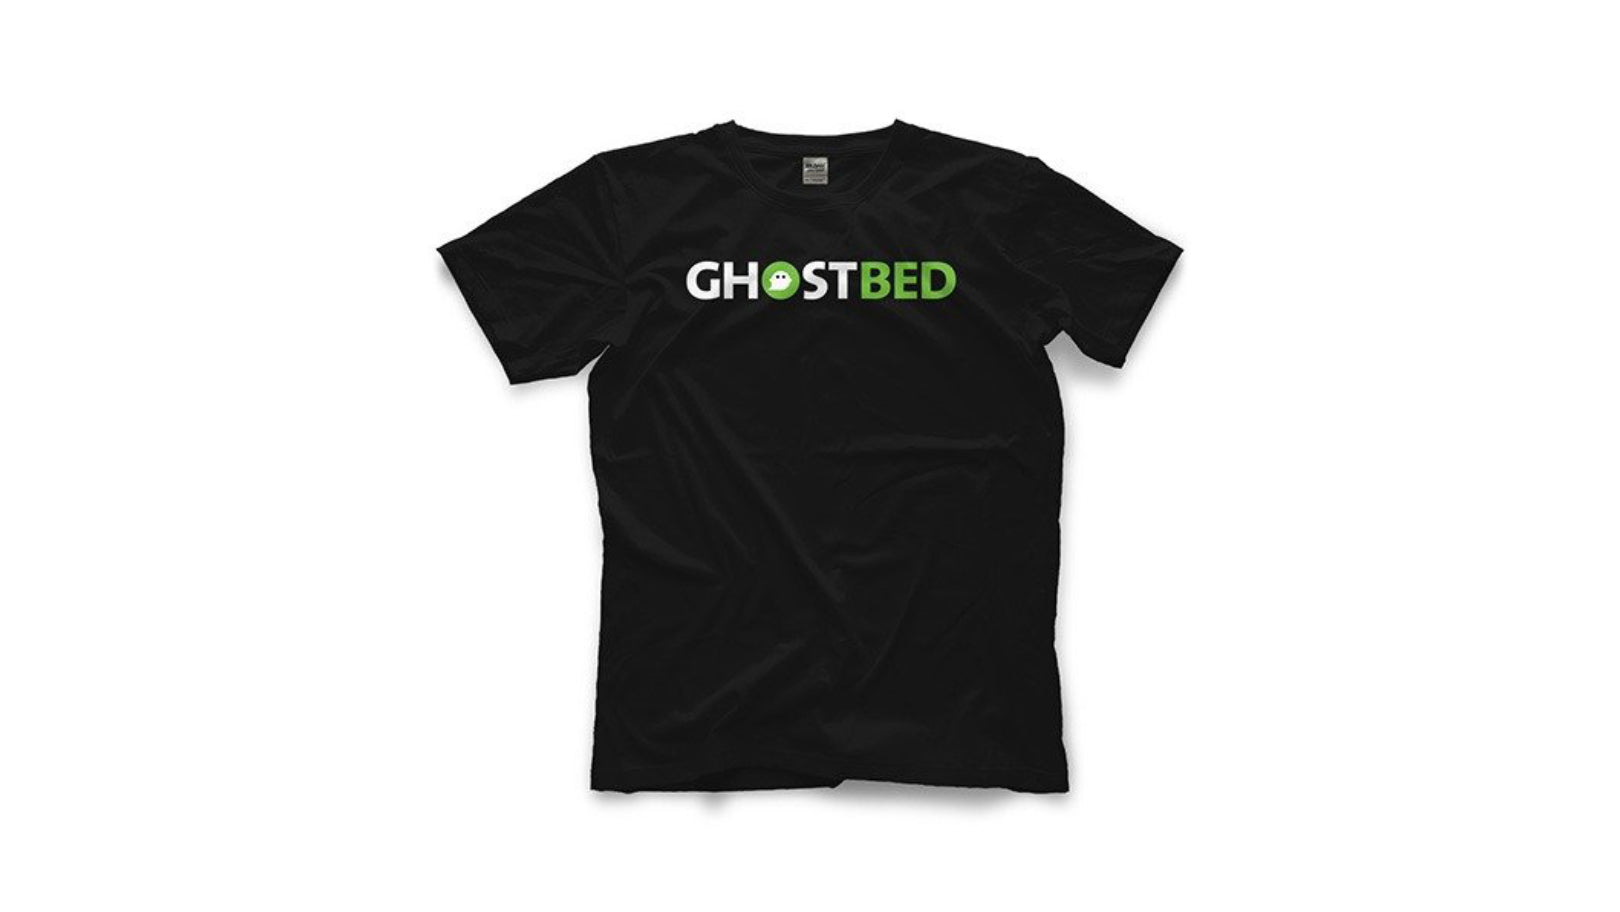 GhostBed T-Shirt